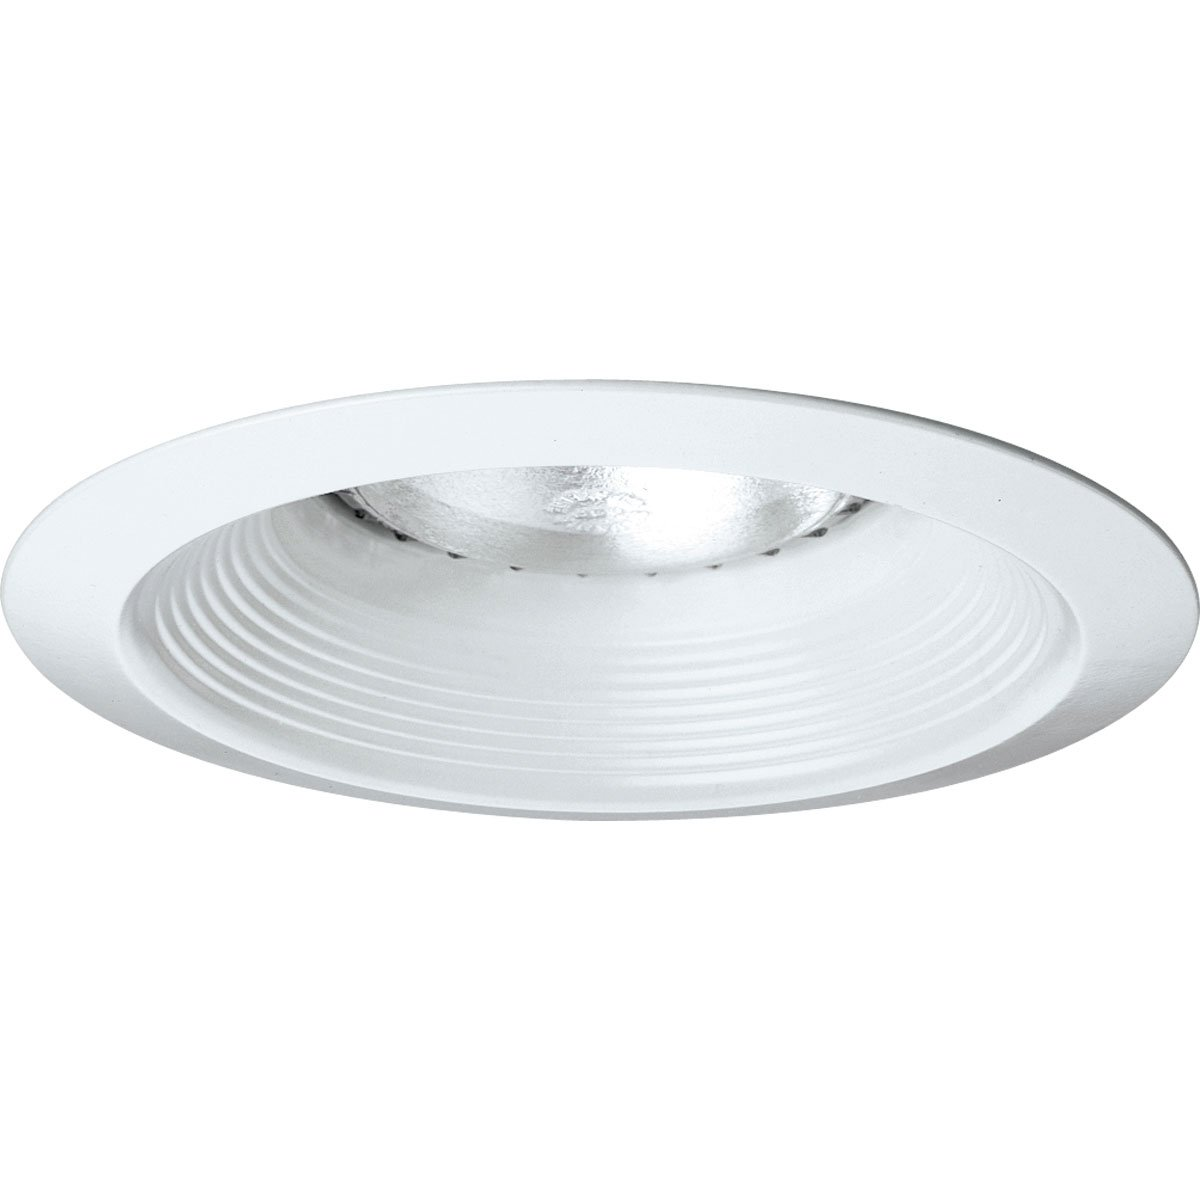 Progress Lighting P8075-28 Long Neck Baffle UL/CUL Listed For Damp Locations 7-3/4-Inch O D, White